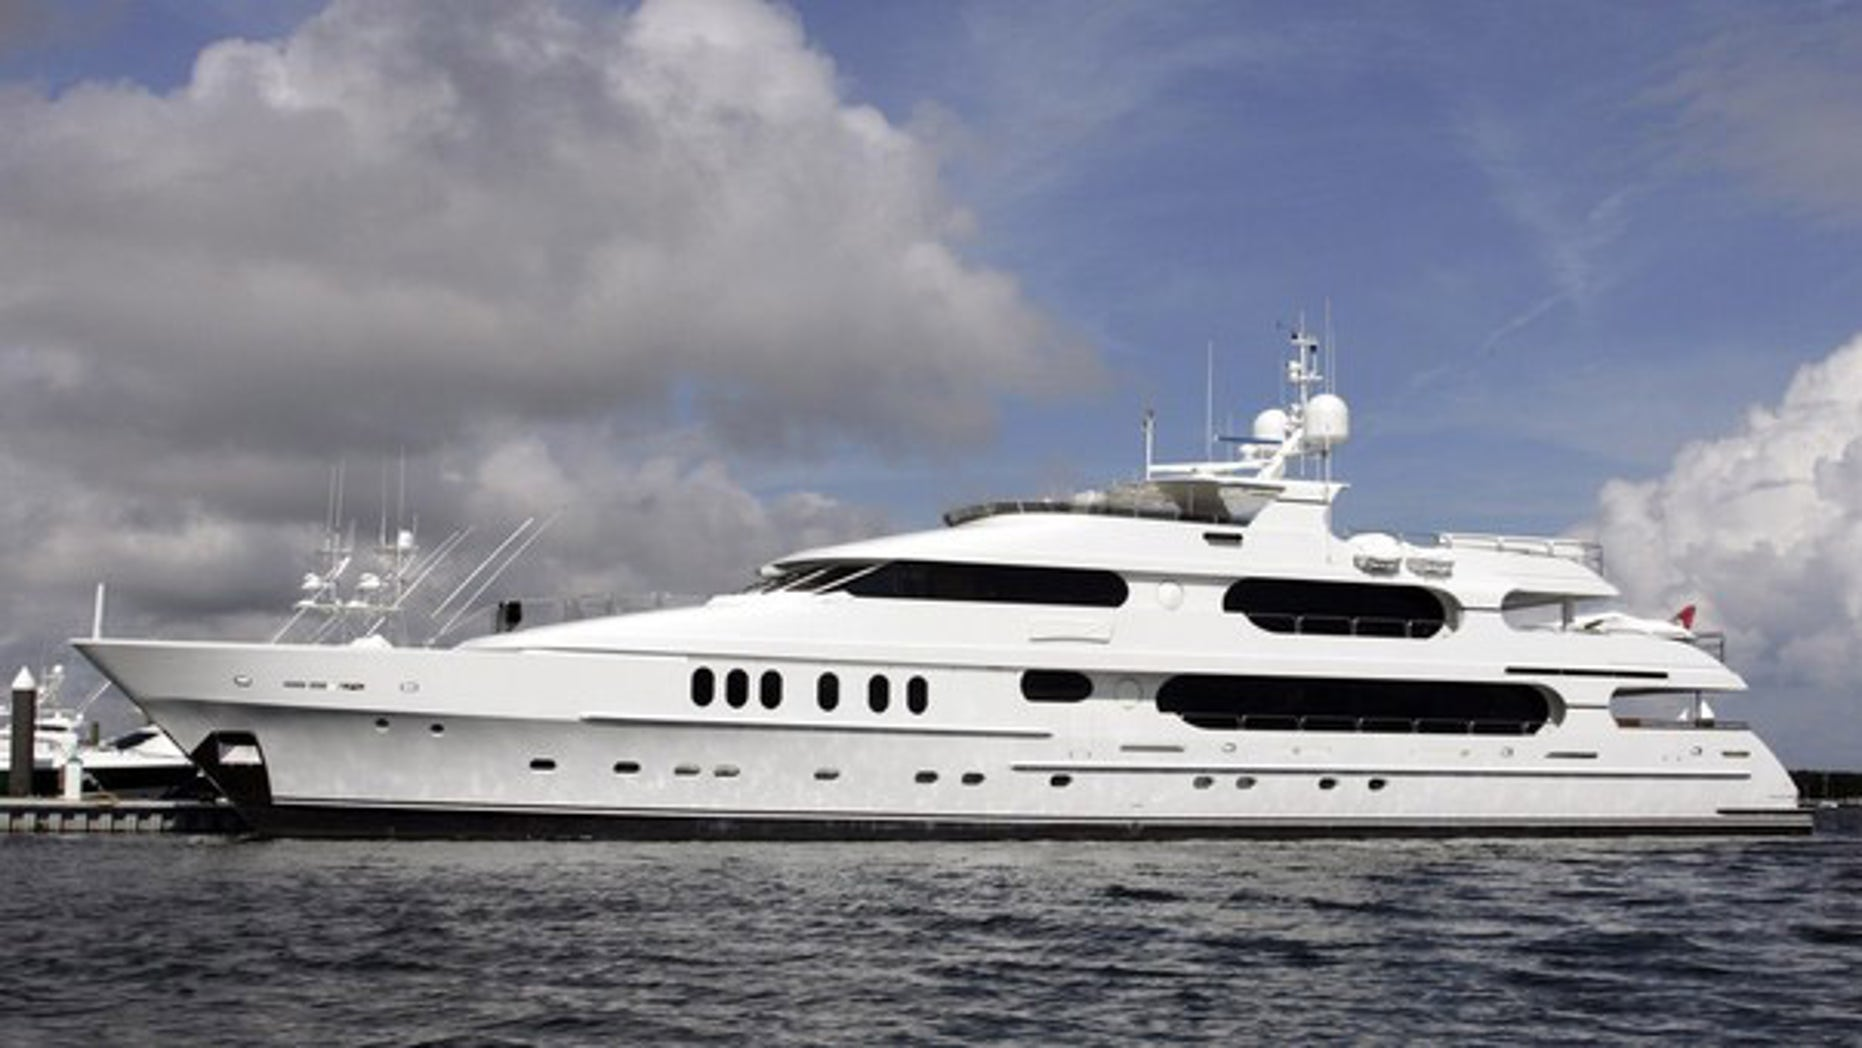 The 155-foot yacht Privacy owned by golfer Tiger Woods is seen at its dock at the Old Port Cove Marina in North Palm Beach, Florida December 16, 2009.(Reuters)